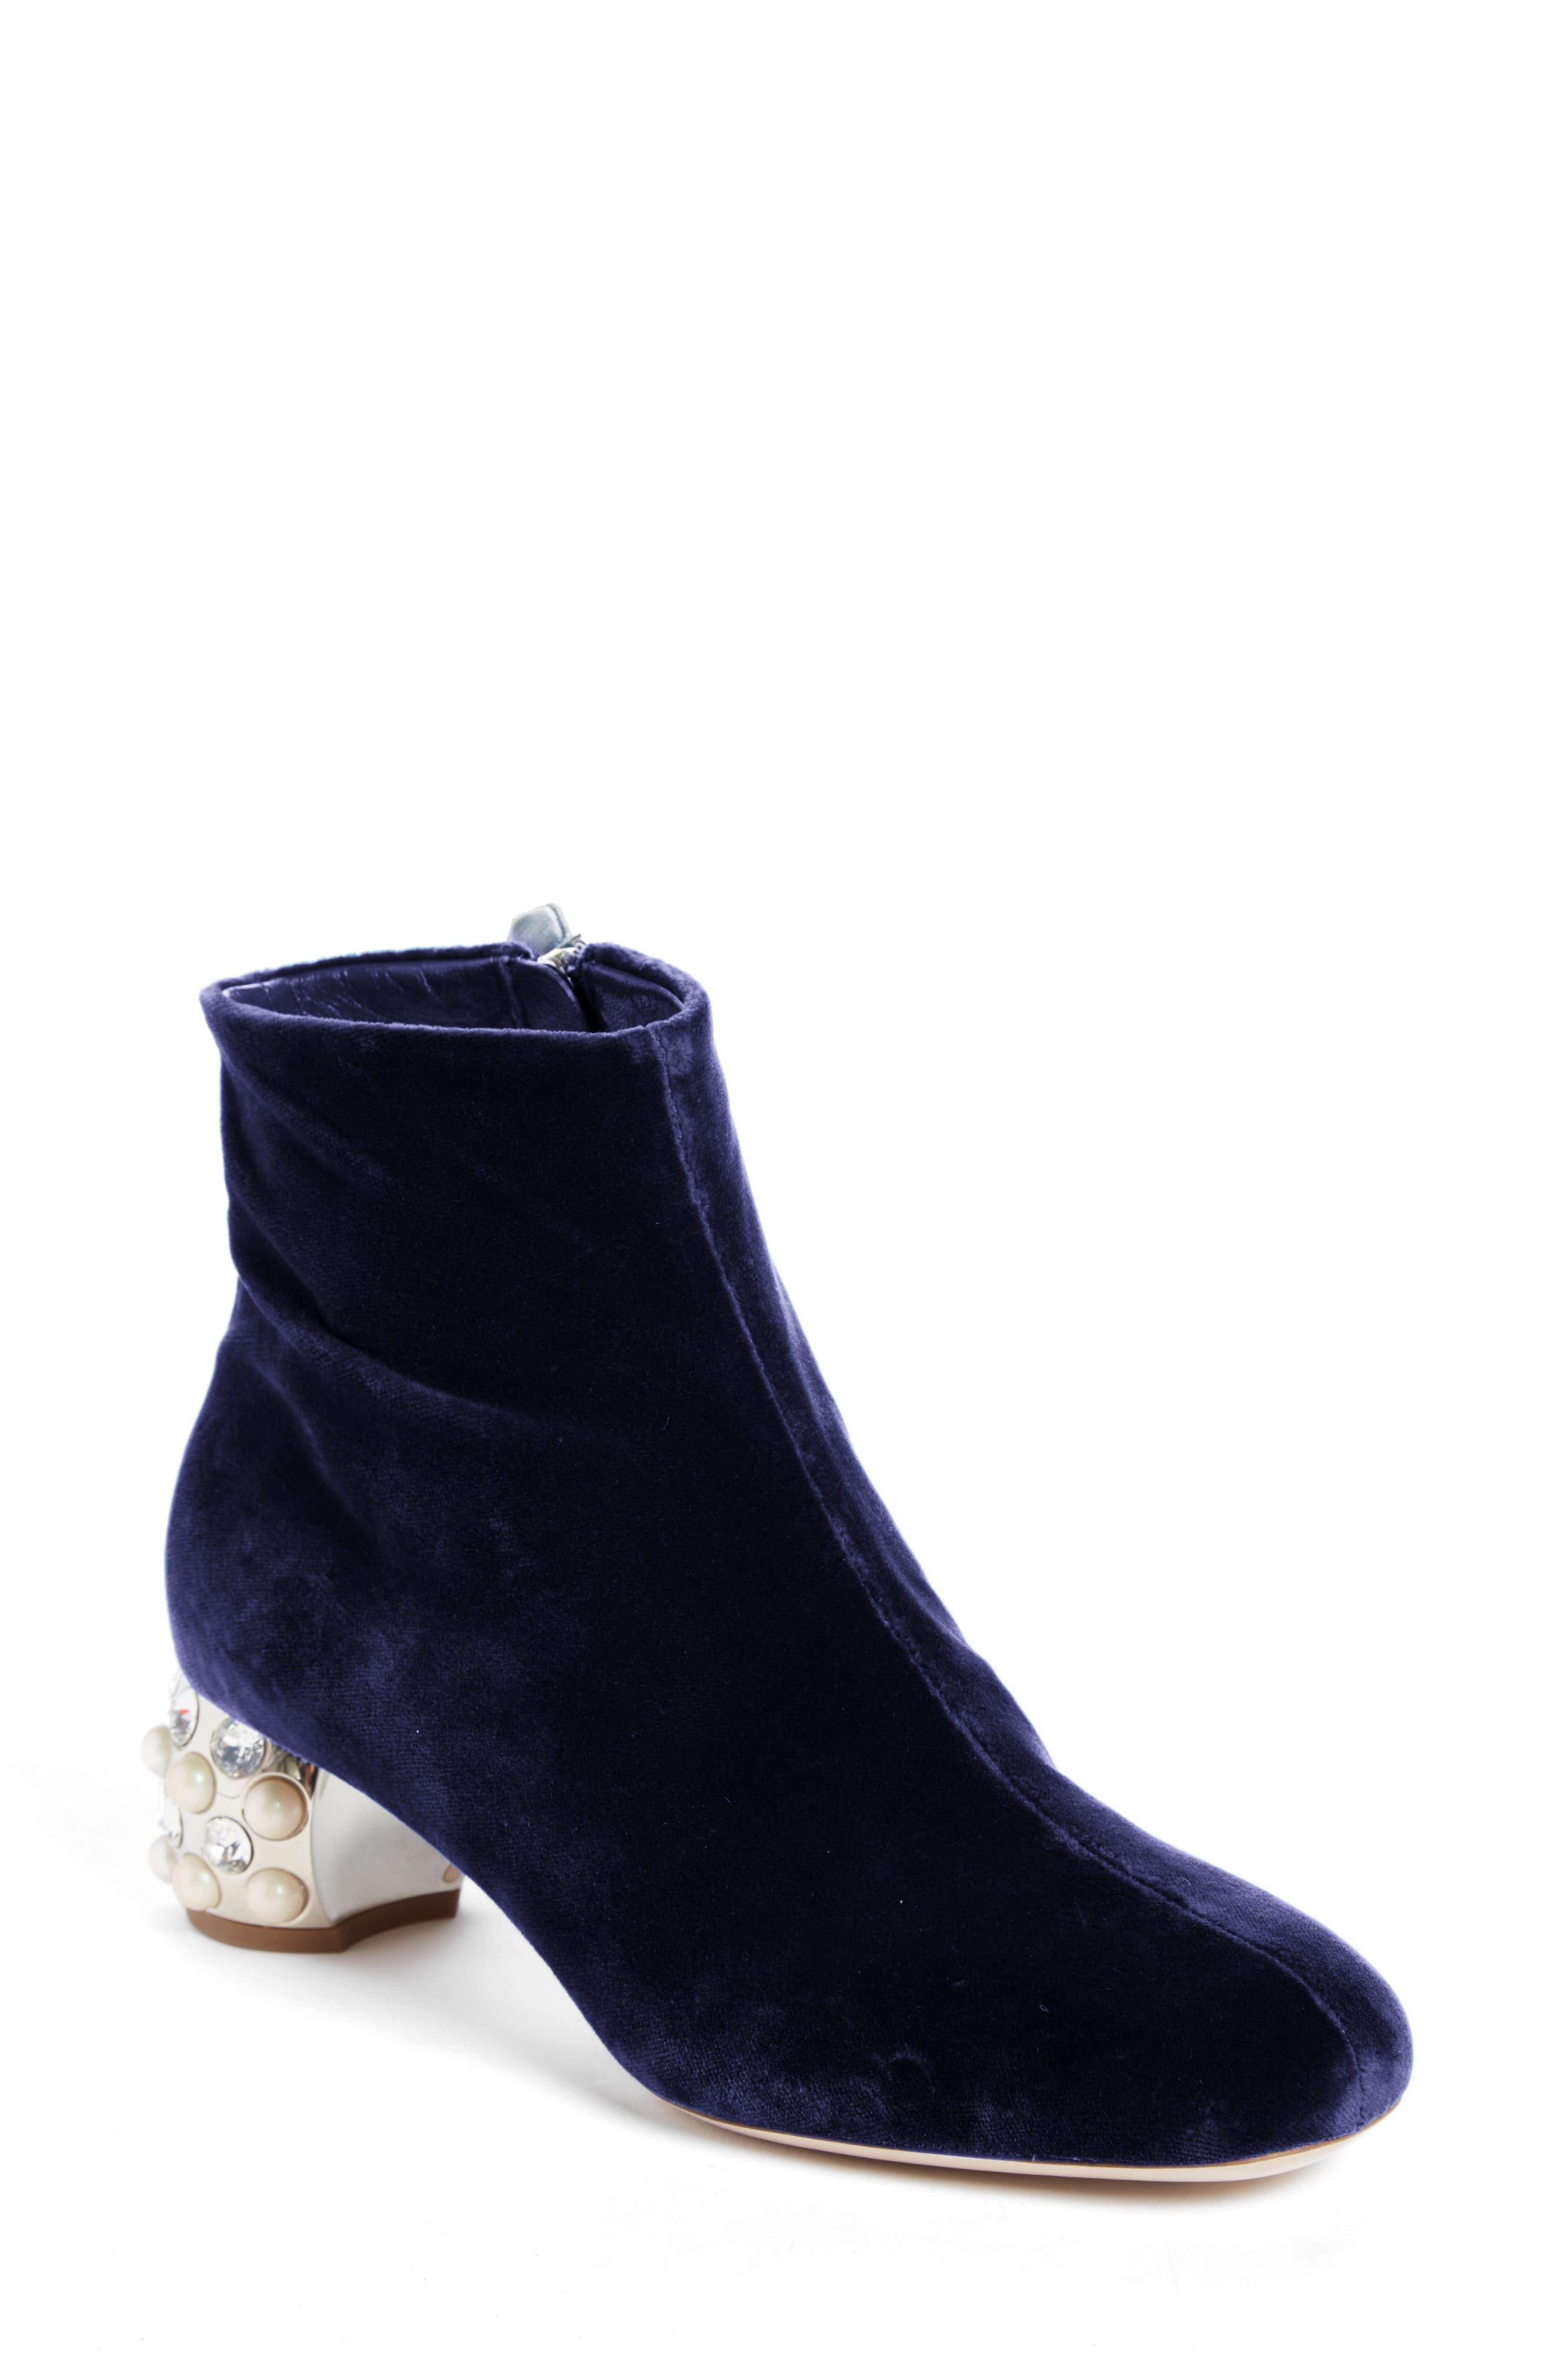 Alternate Image 1 Selected - Miu Miu Embellished Block Heel Boot (Women)